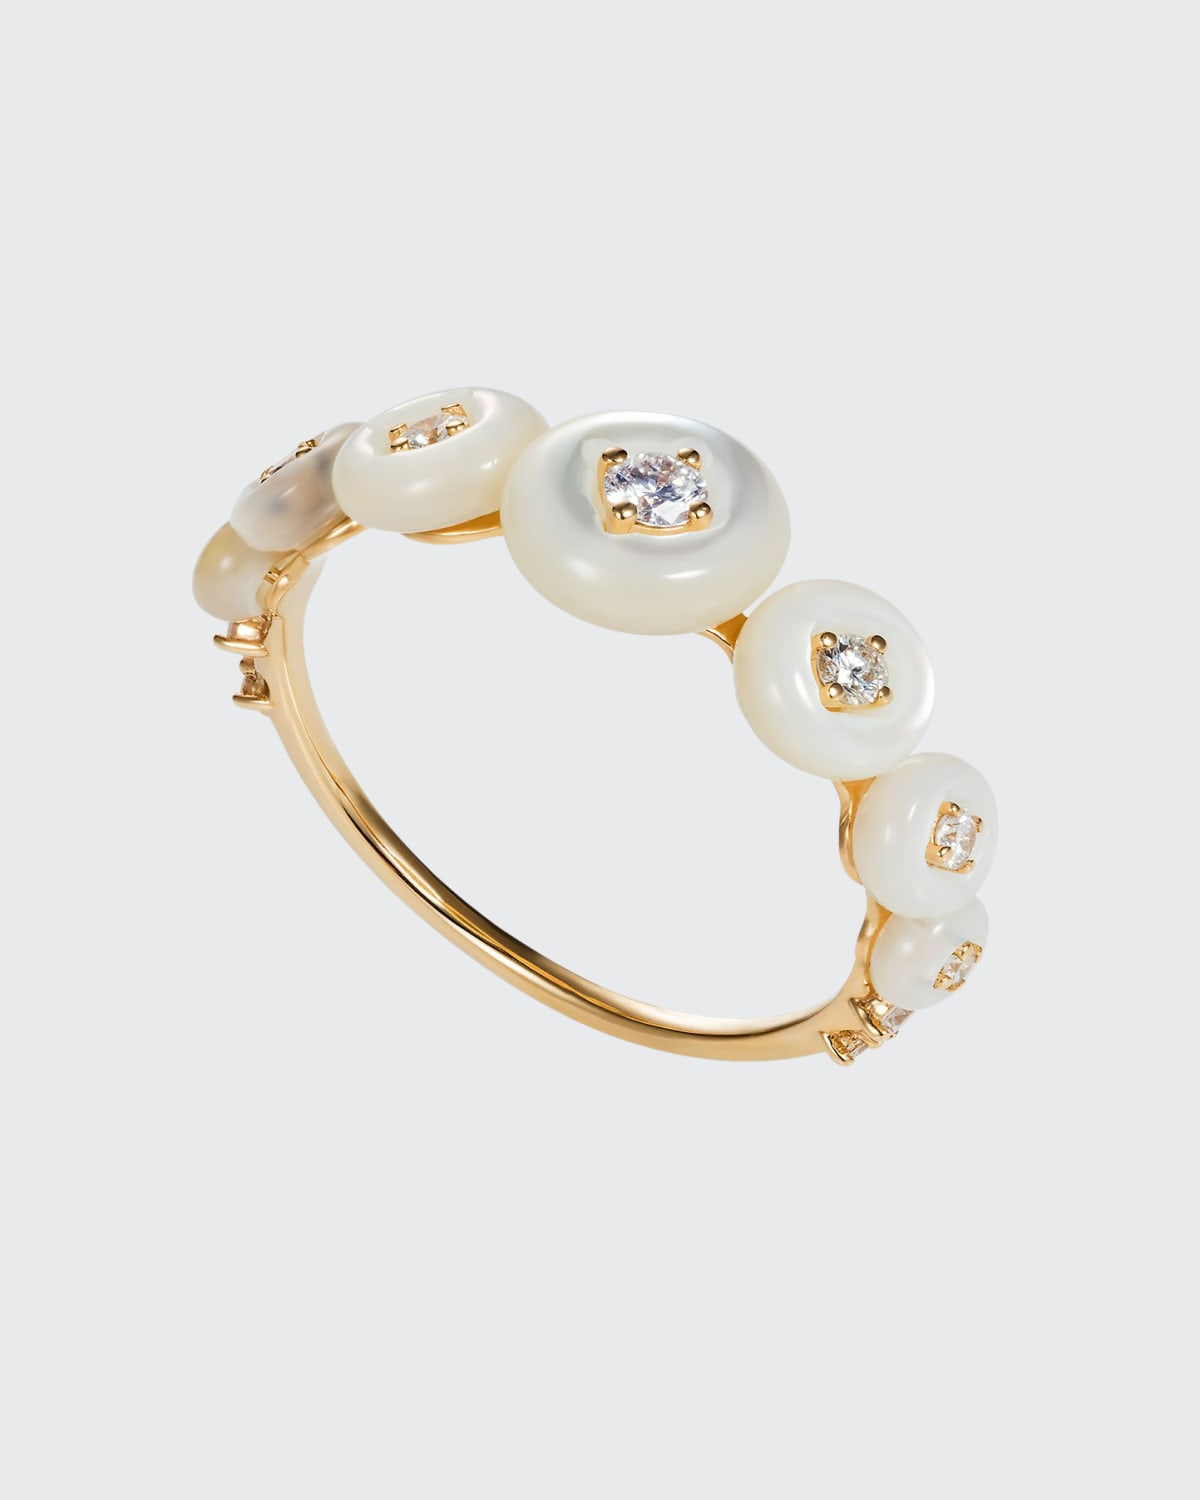 Surrounding Small Ring with Mother-of-Pearl